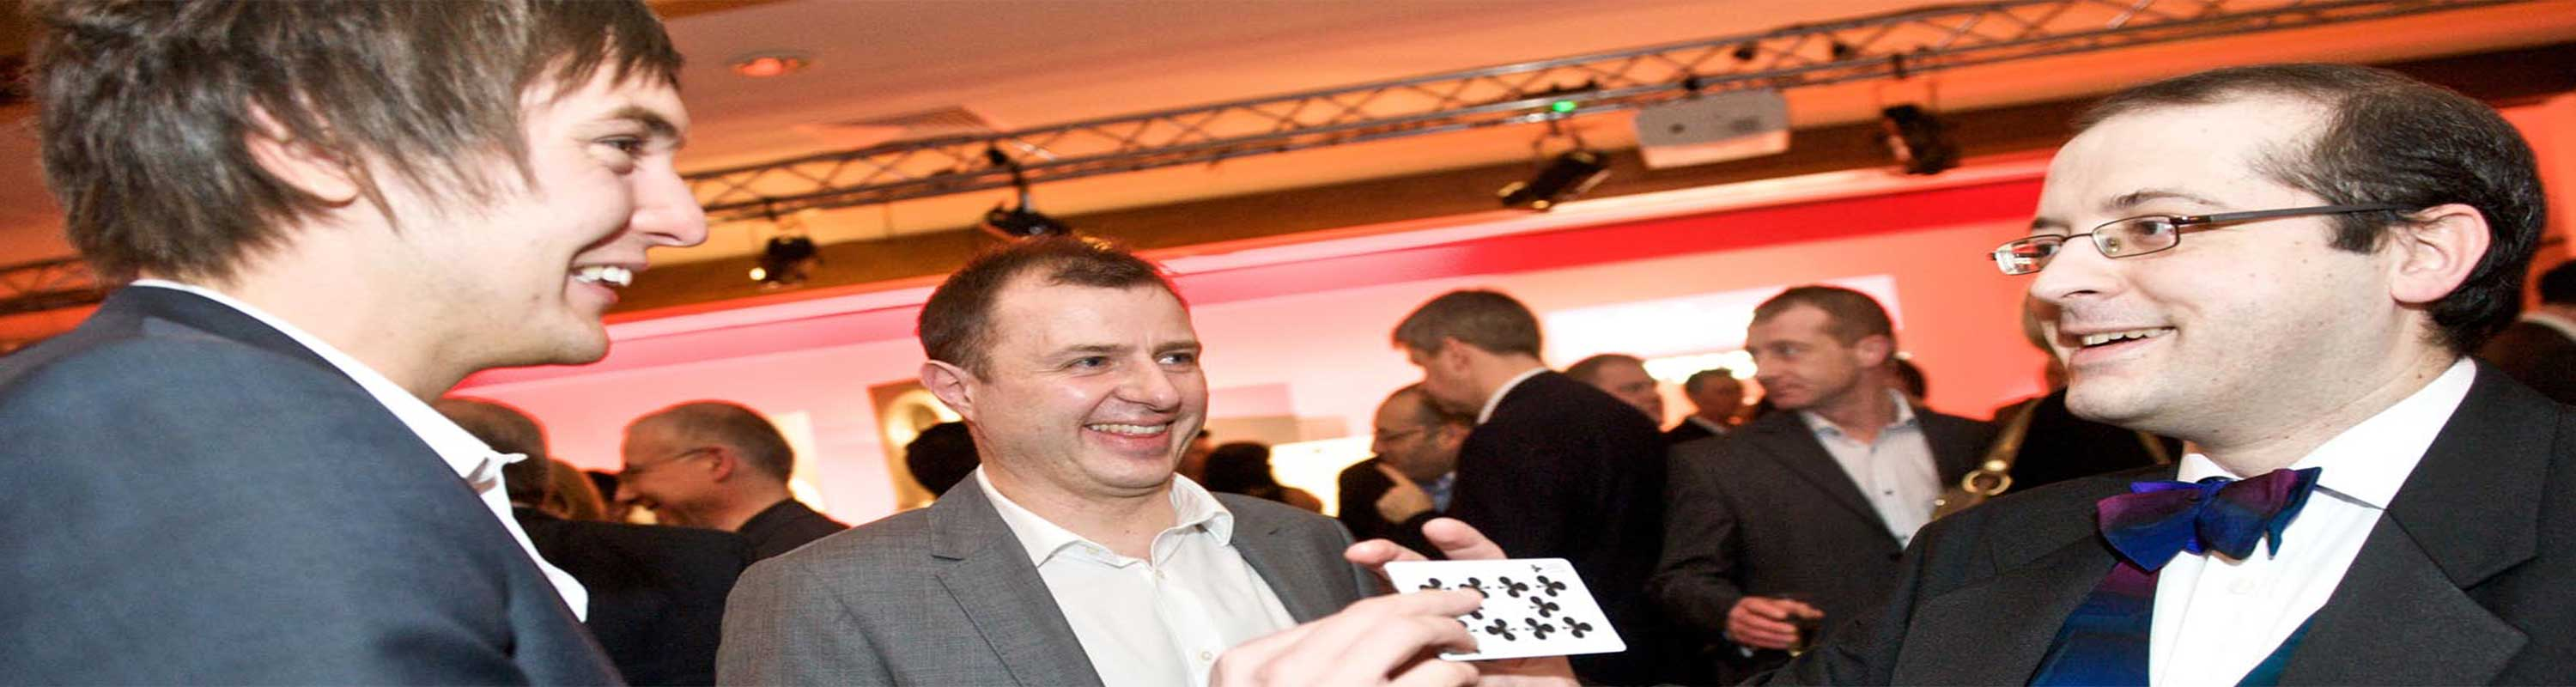 Marco performing card magic at a company event.skilled magician to enhance party